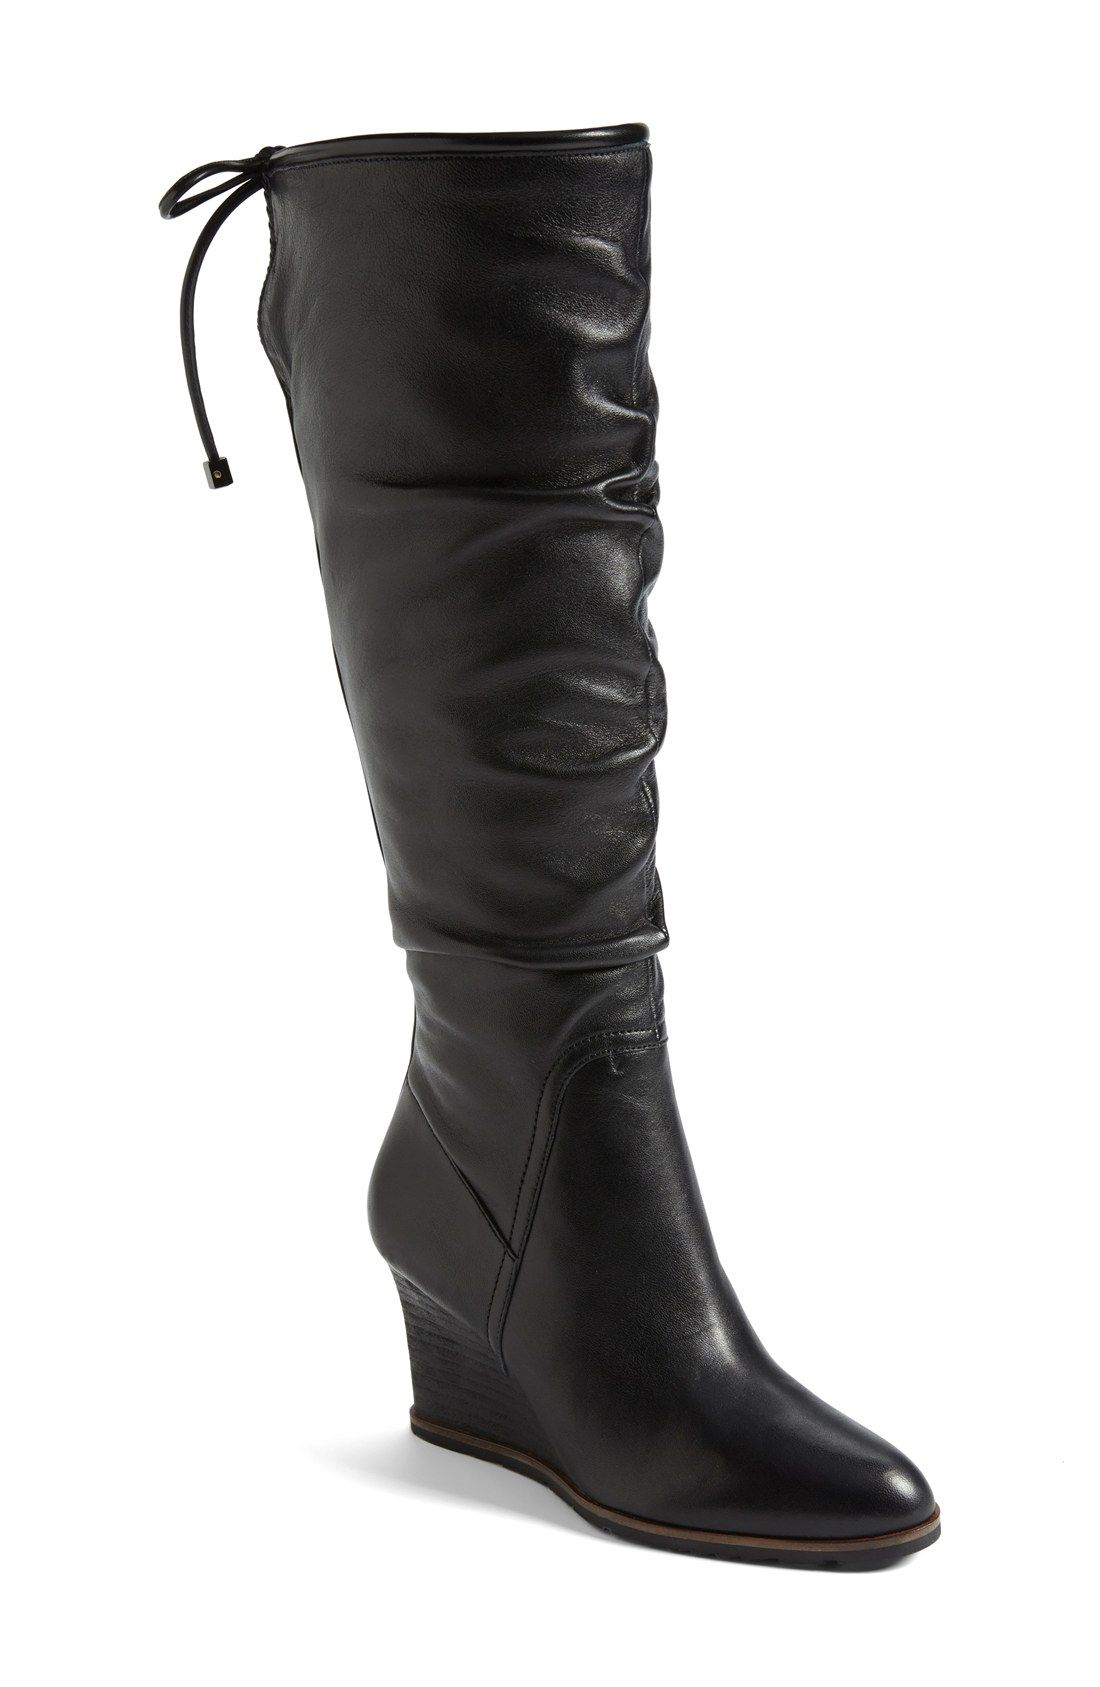 0787dce9dc6 Franco Sarto 'Dominion' Wedge Boot (Women) (Wide Calf)   Shoes ...